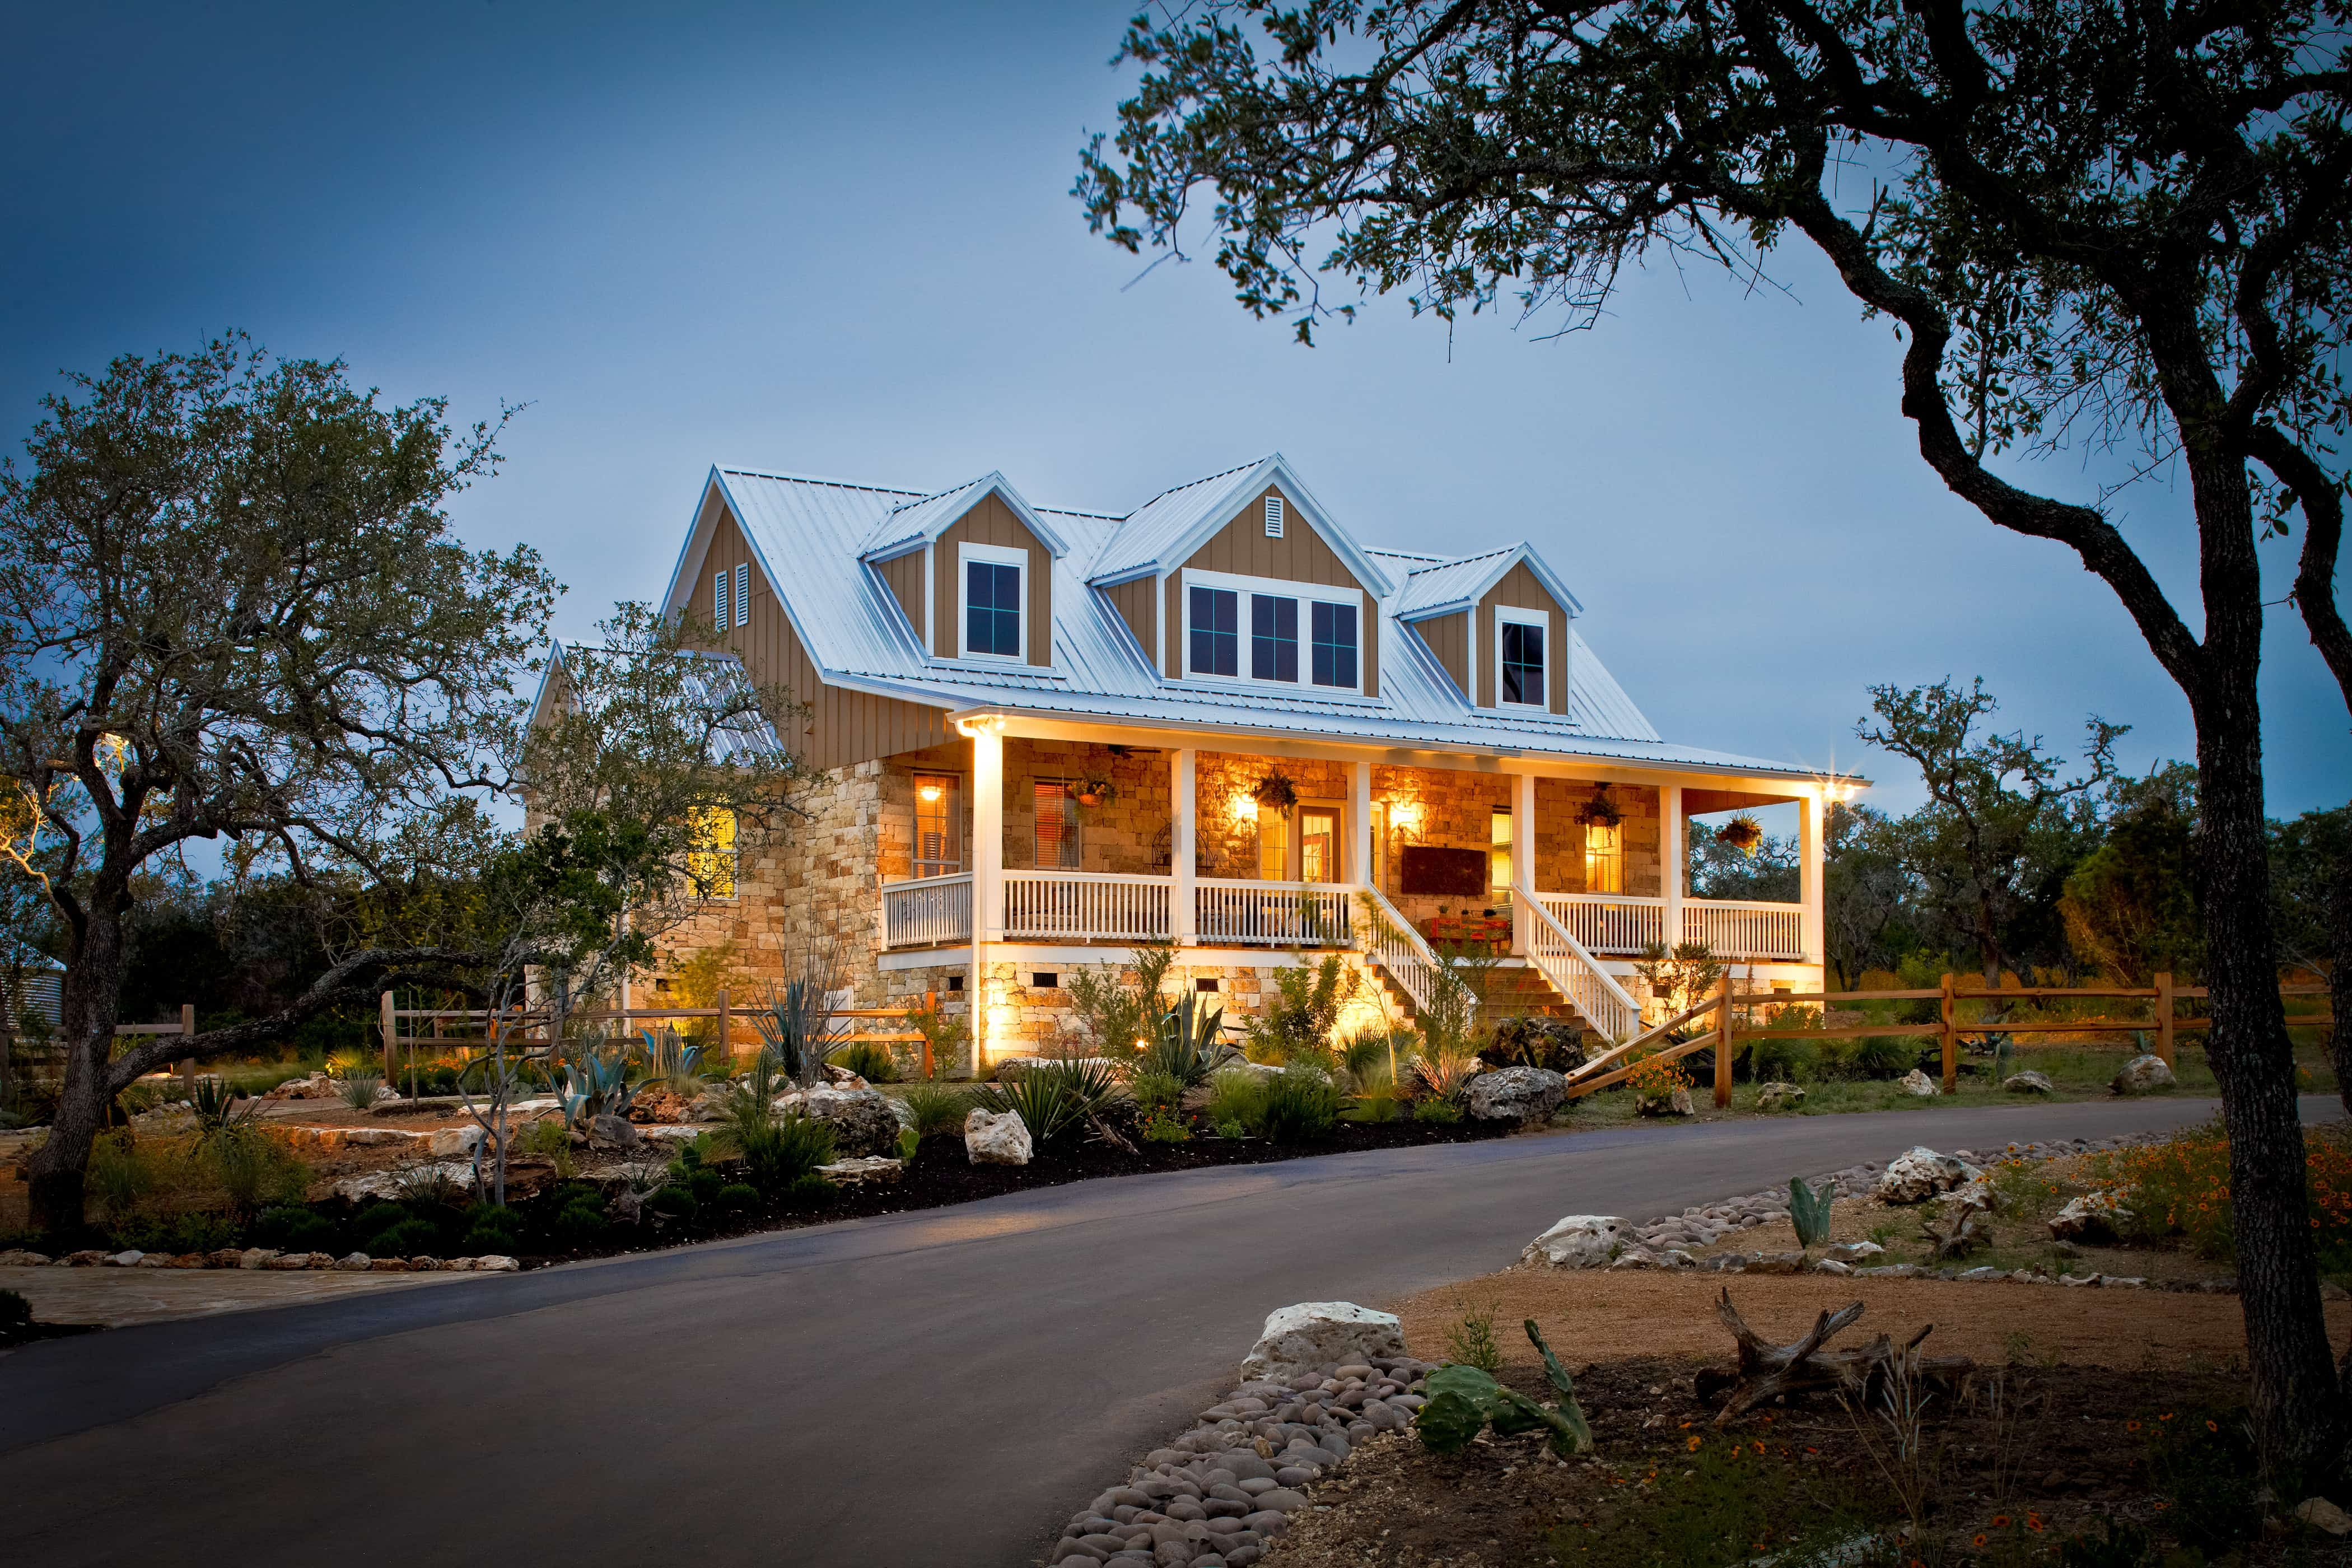 wineries a wimberley texas travel cottages driftwood of and estate tales winery around cabin